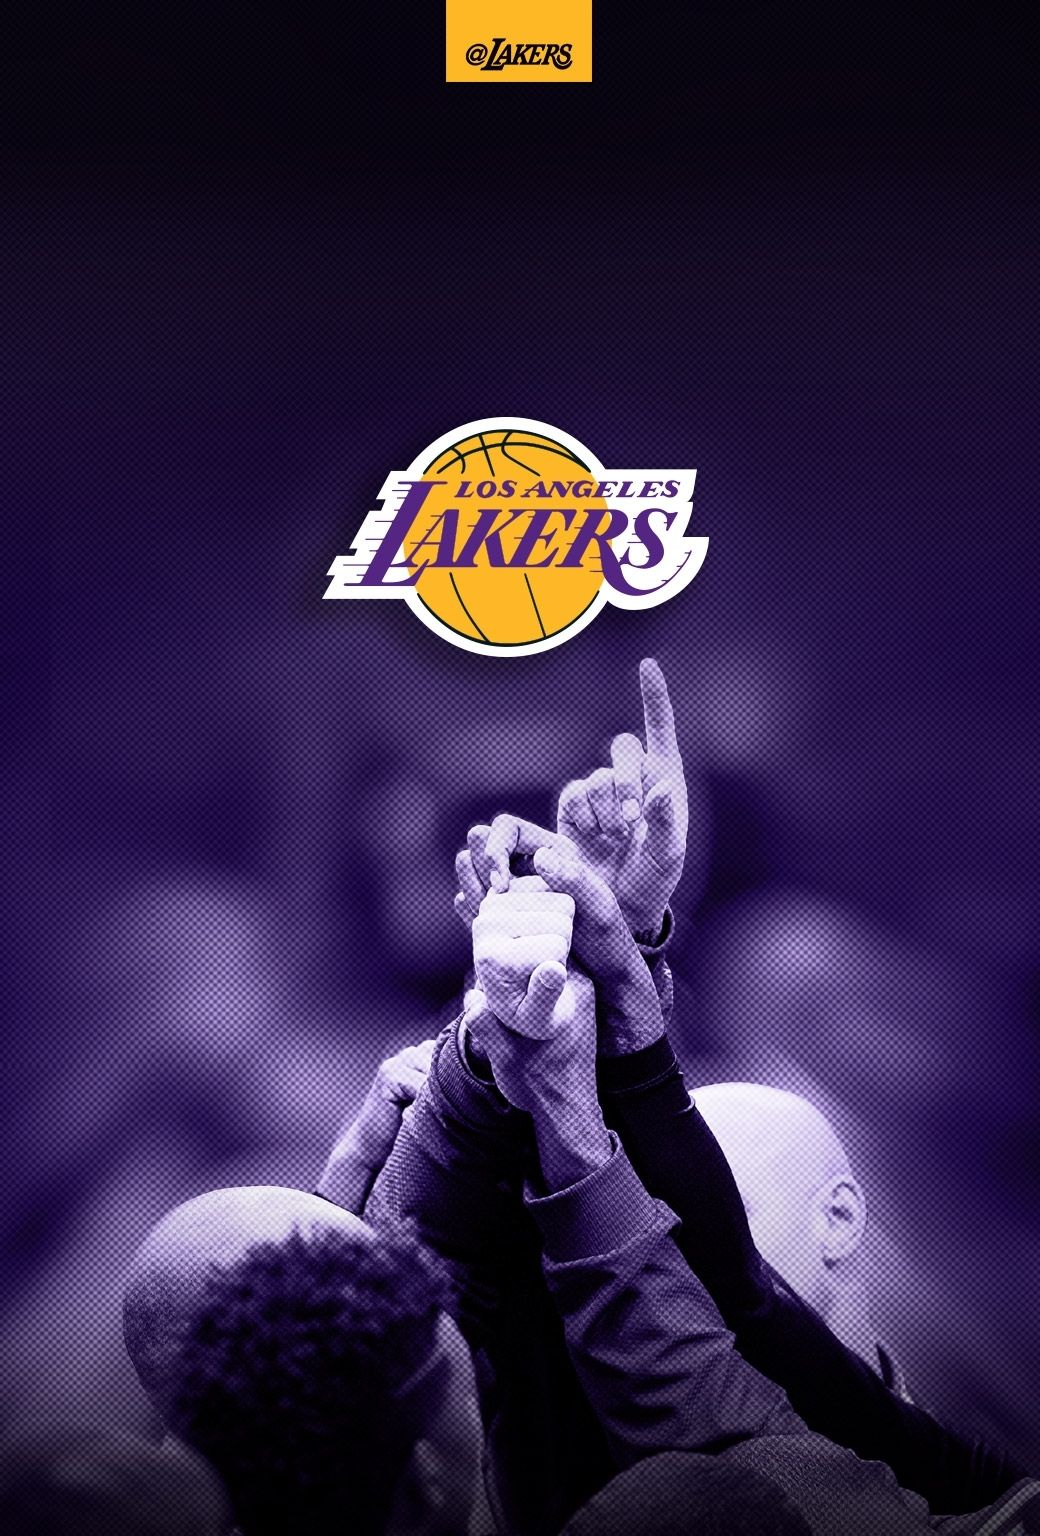 10 Latest La Lakers Wallpaper For Android FULL HD 1920x1080 PC Background